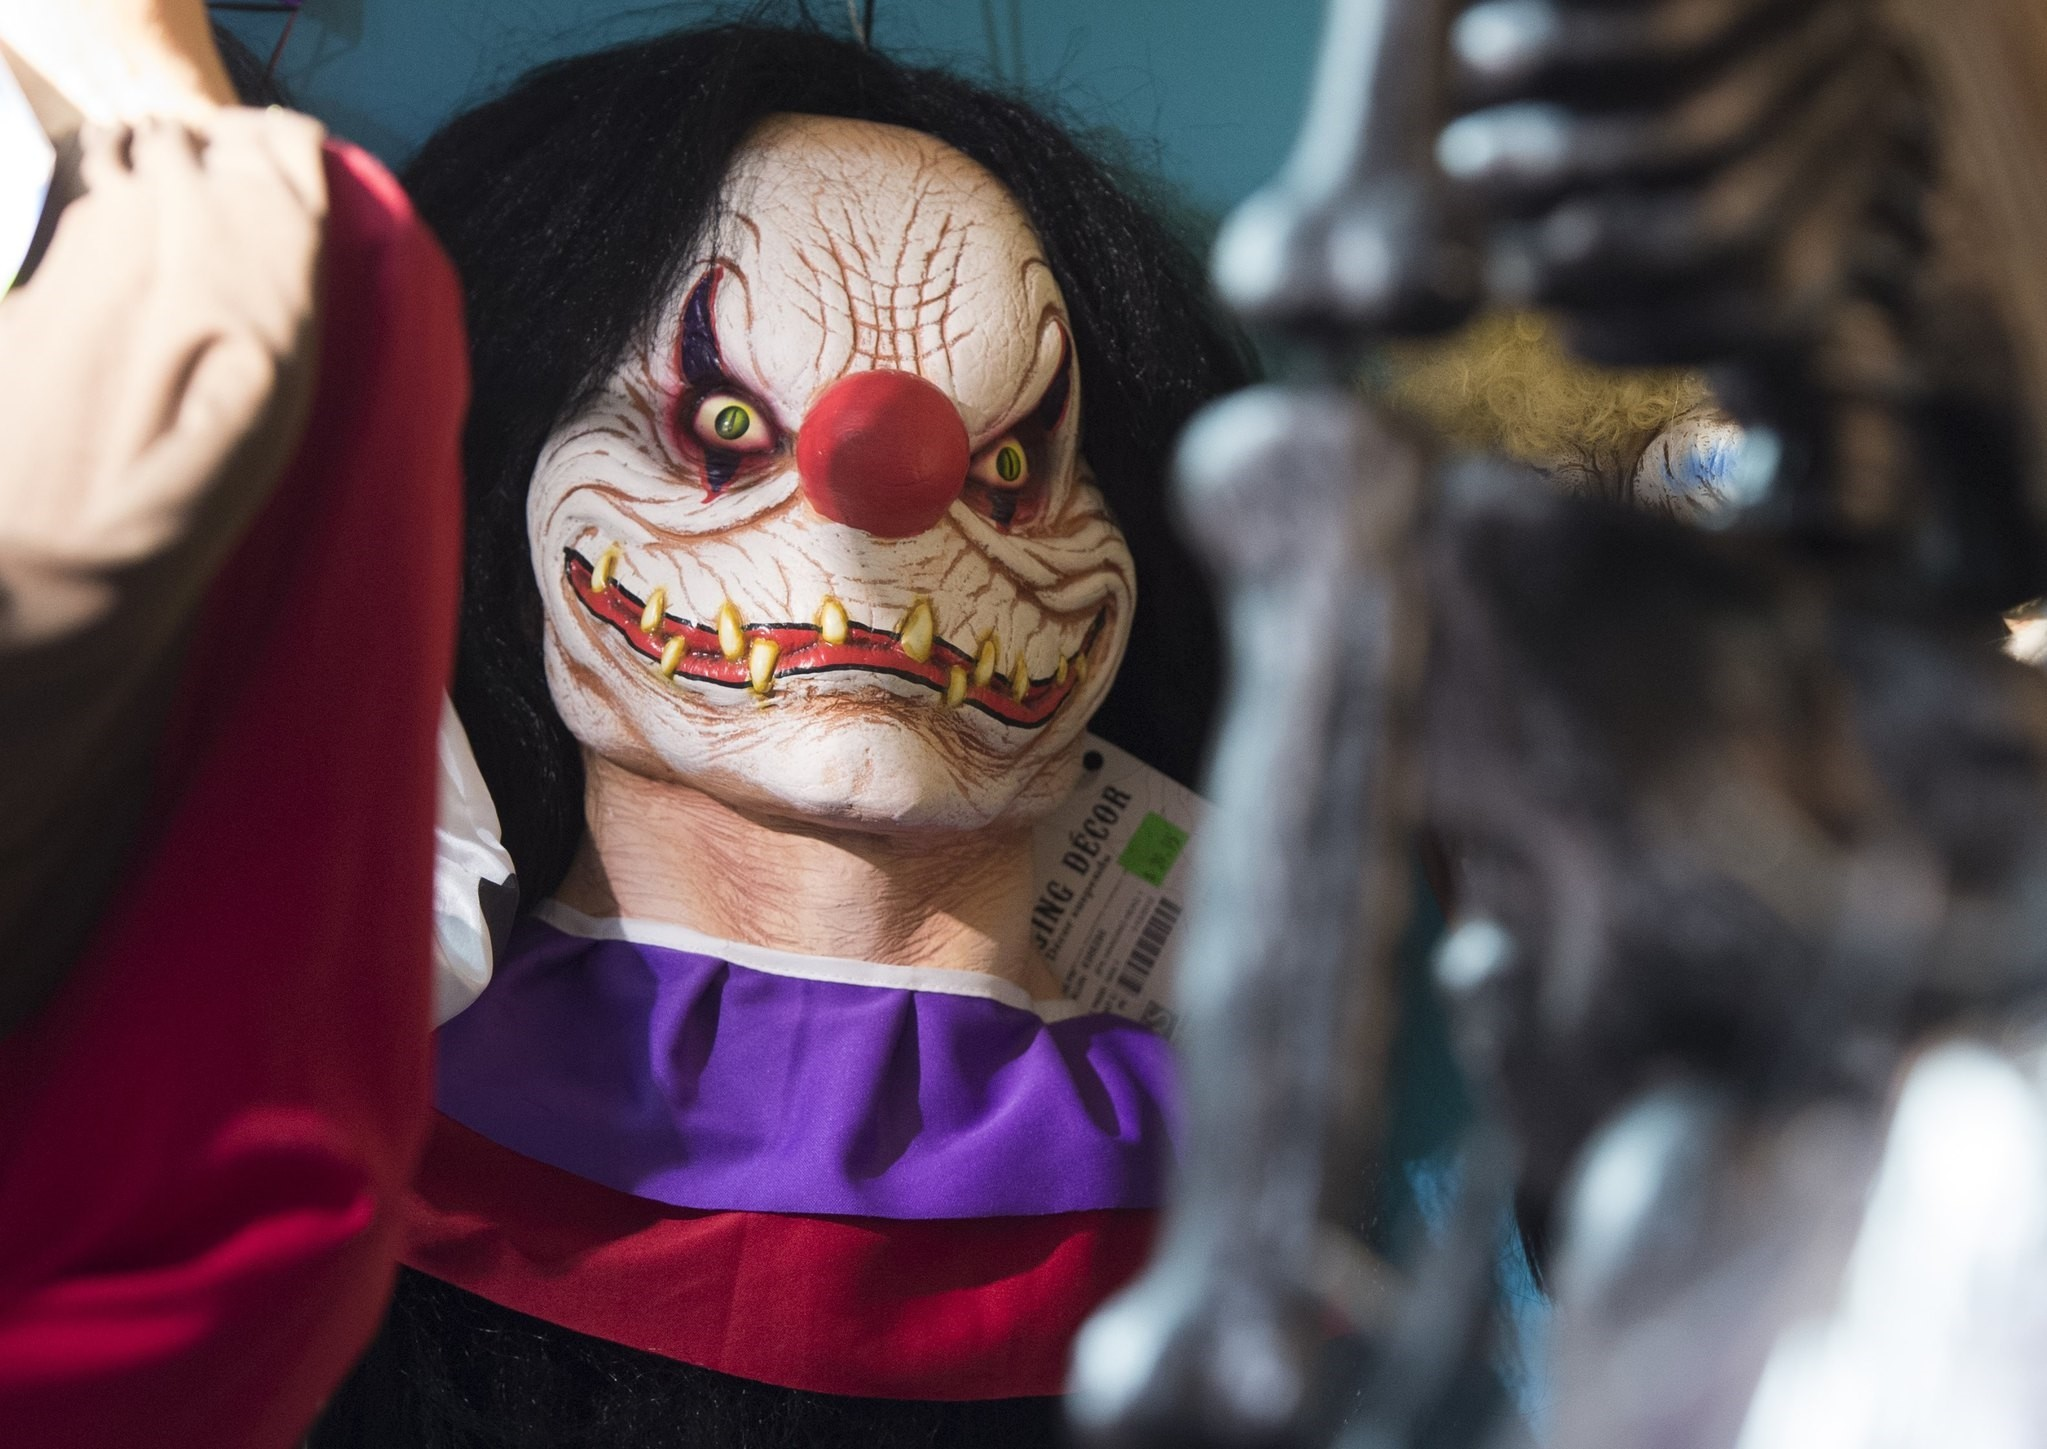 Halloween costumes and props, including a ,scary, clown mask, are seen for sale at Total Party, a party store, in Arlington, Virginia, October 7, 2016. (AFP Photo)